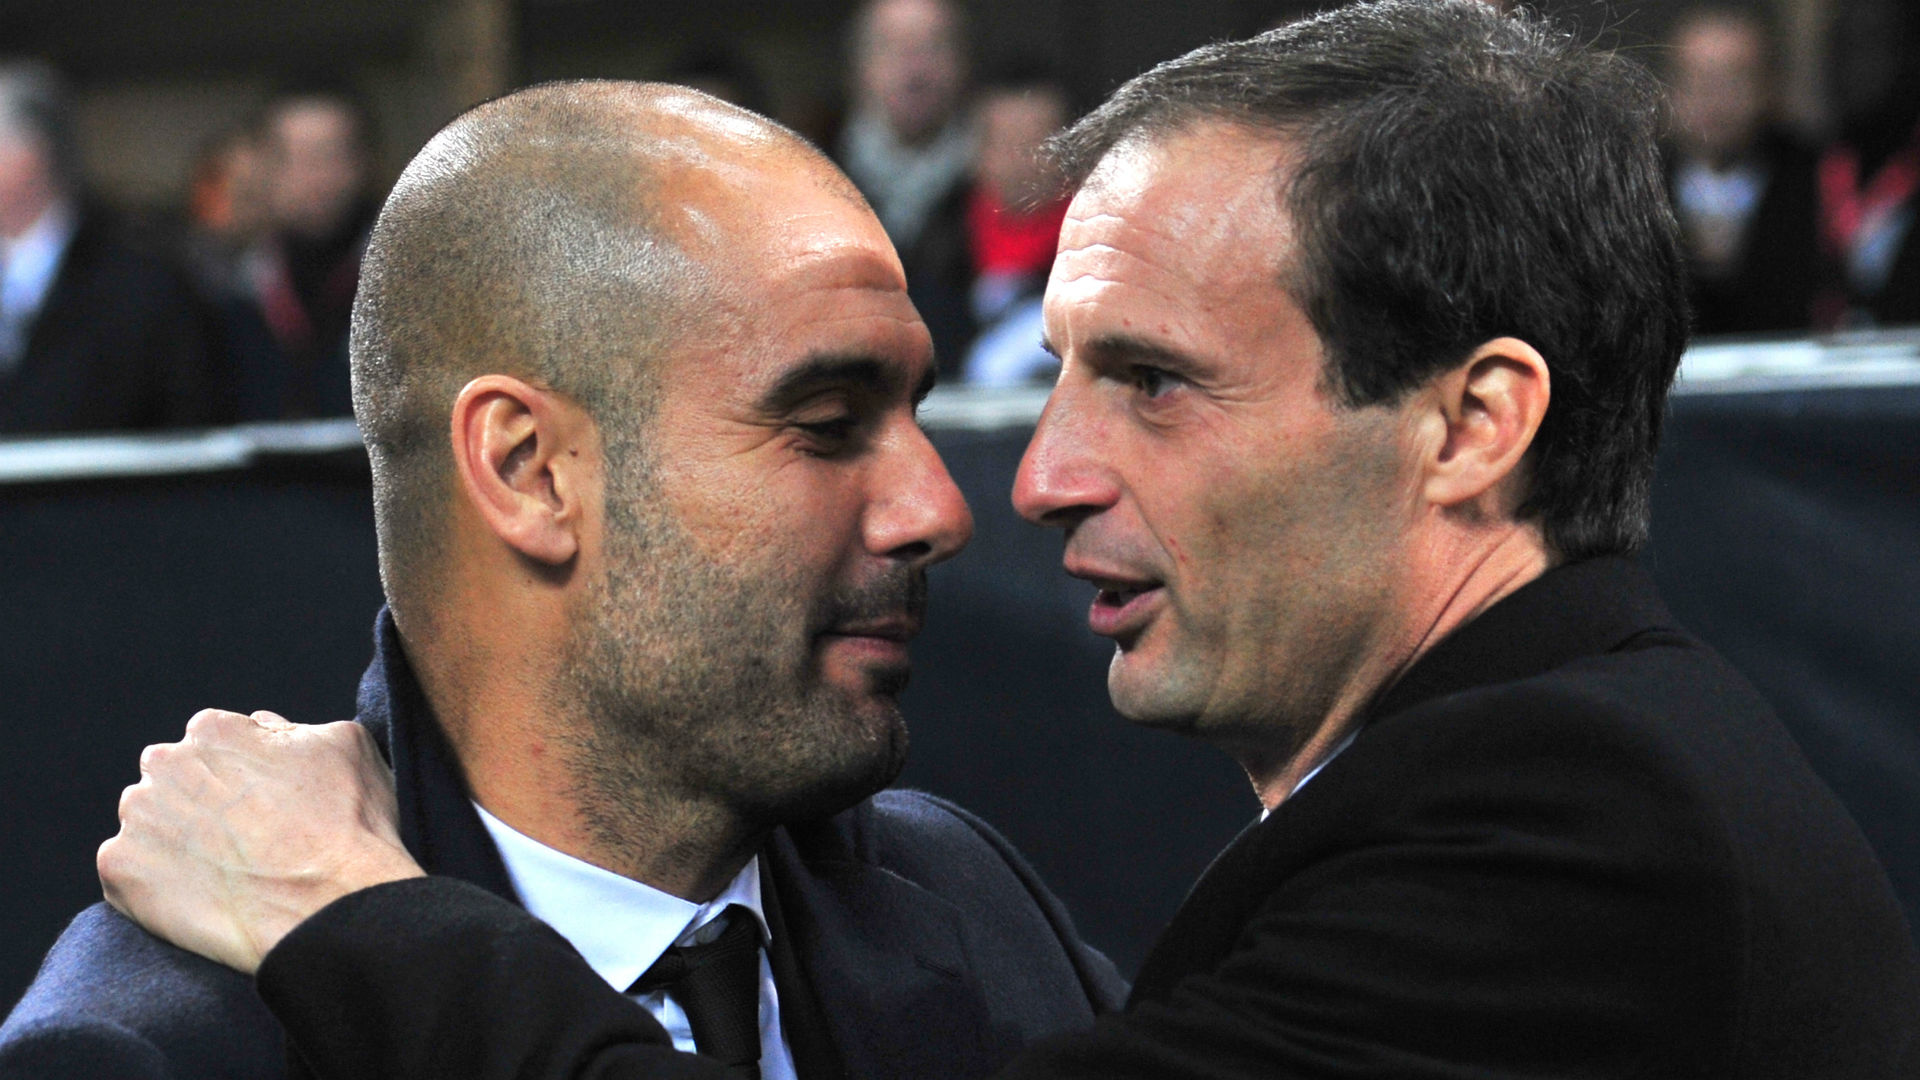 'A manager of Manchester is coming' - Allegri mischievously drops Guardiola to Juventus hint